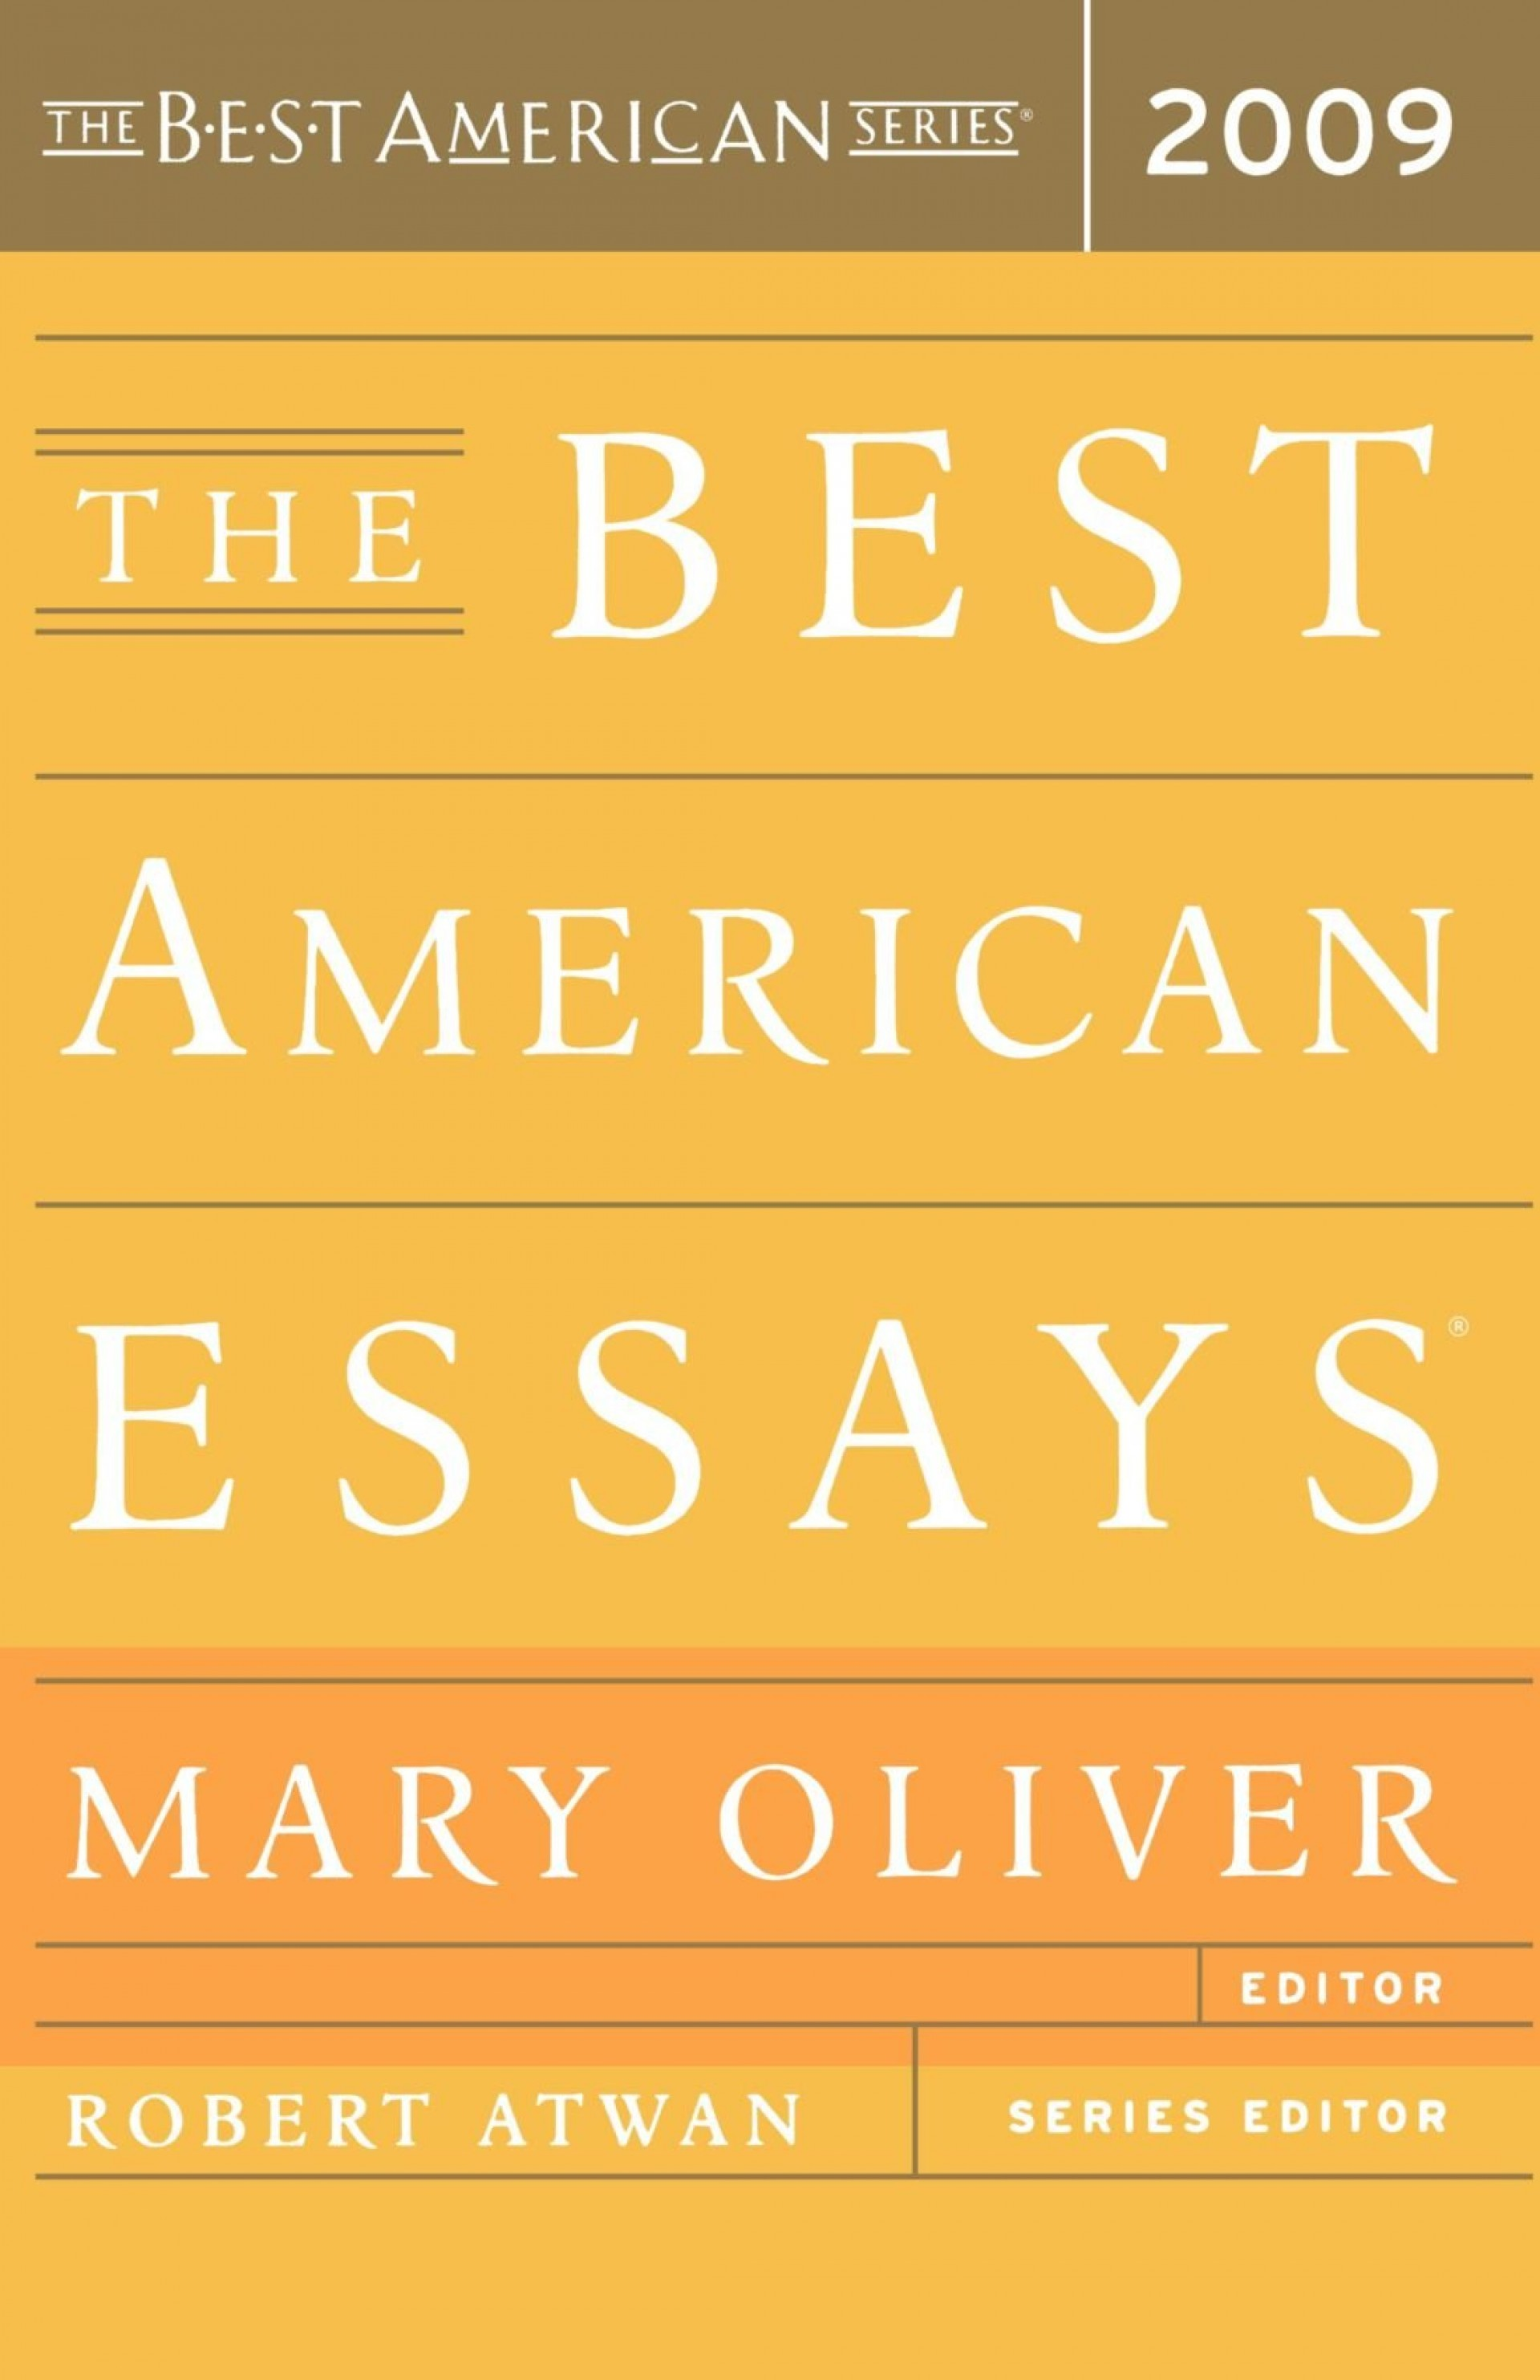 009 617qb5slhfl Essay Example Best American Striking Essays 2017 Pdf Submissions 2019 Of The Century Table Contents 1920